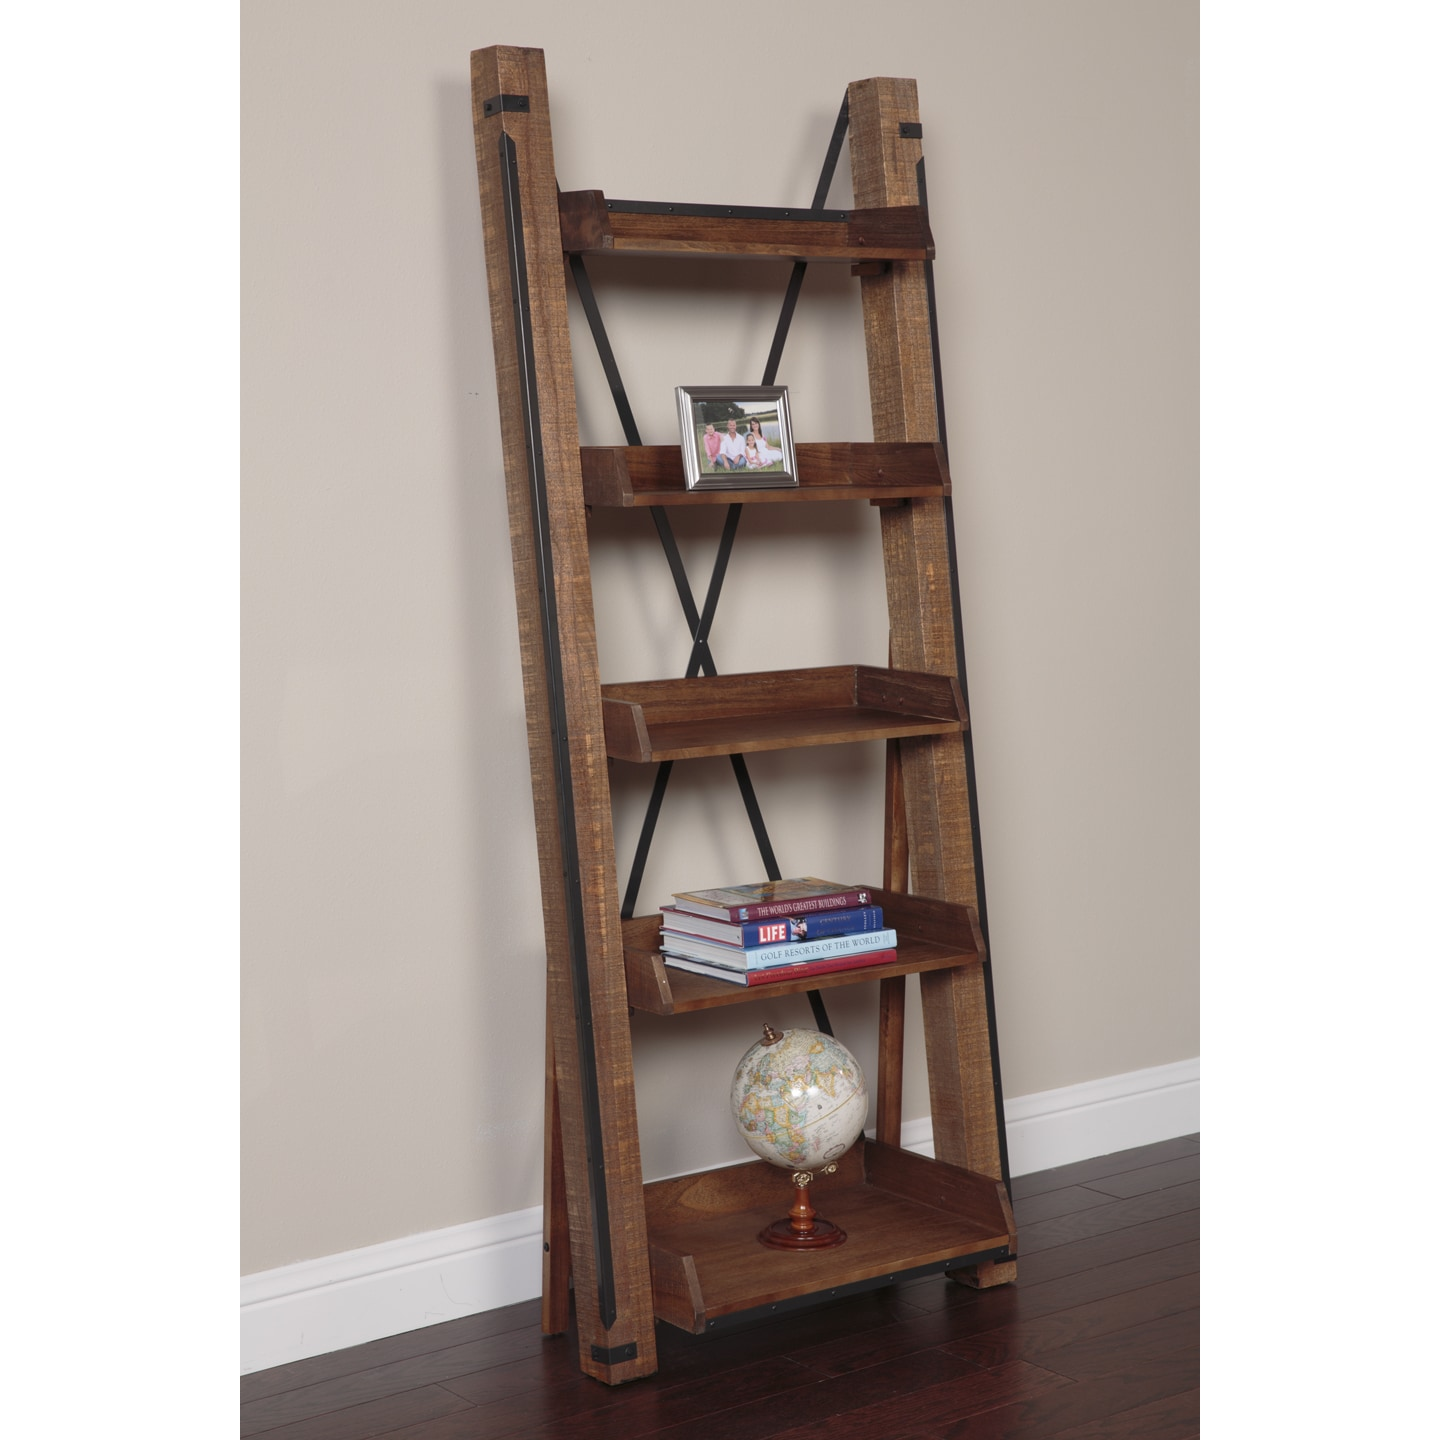 American Industrial Open Shelf Ladder Bookcase (Ladder bo...